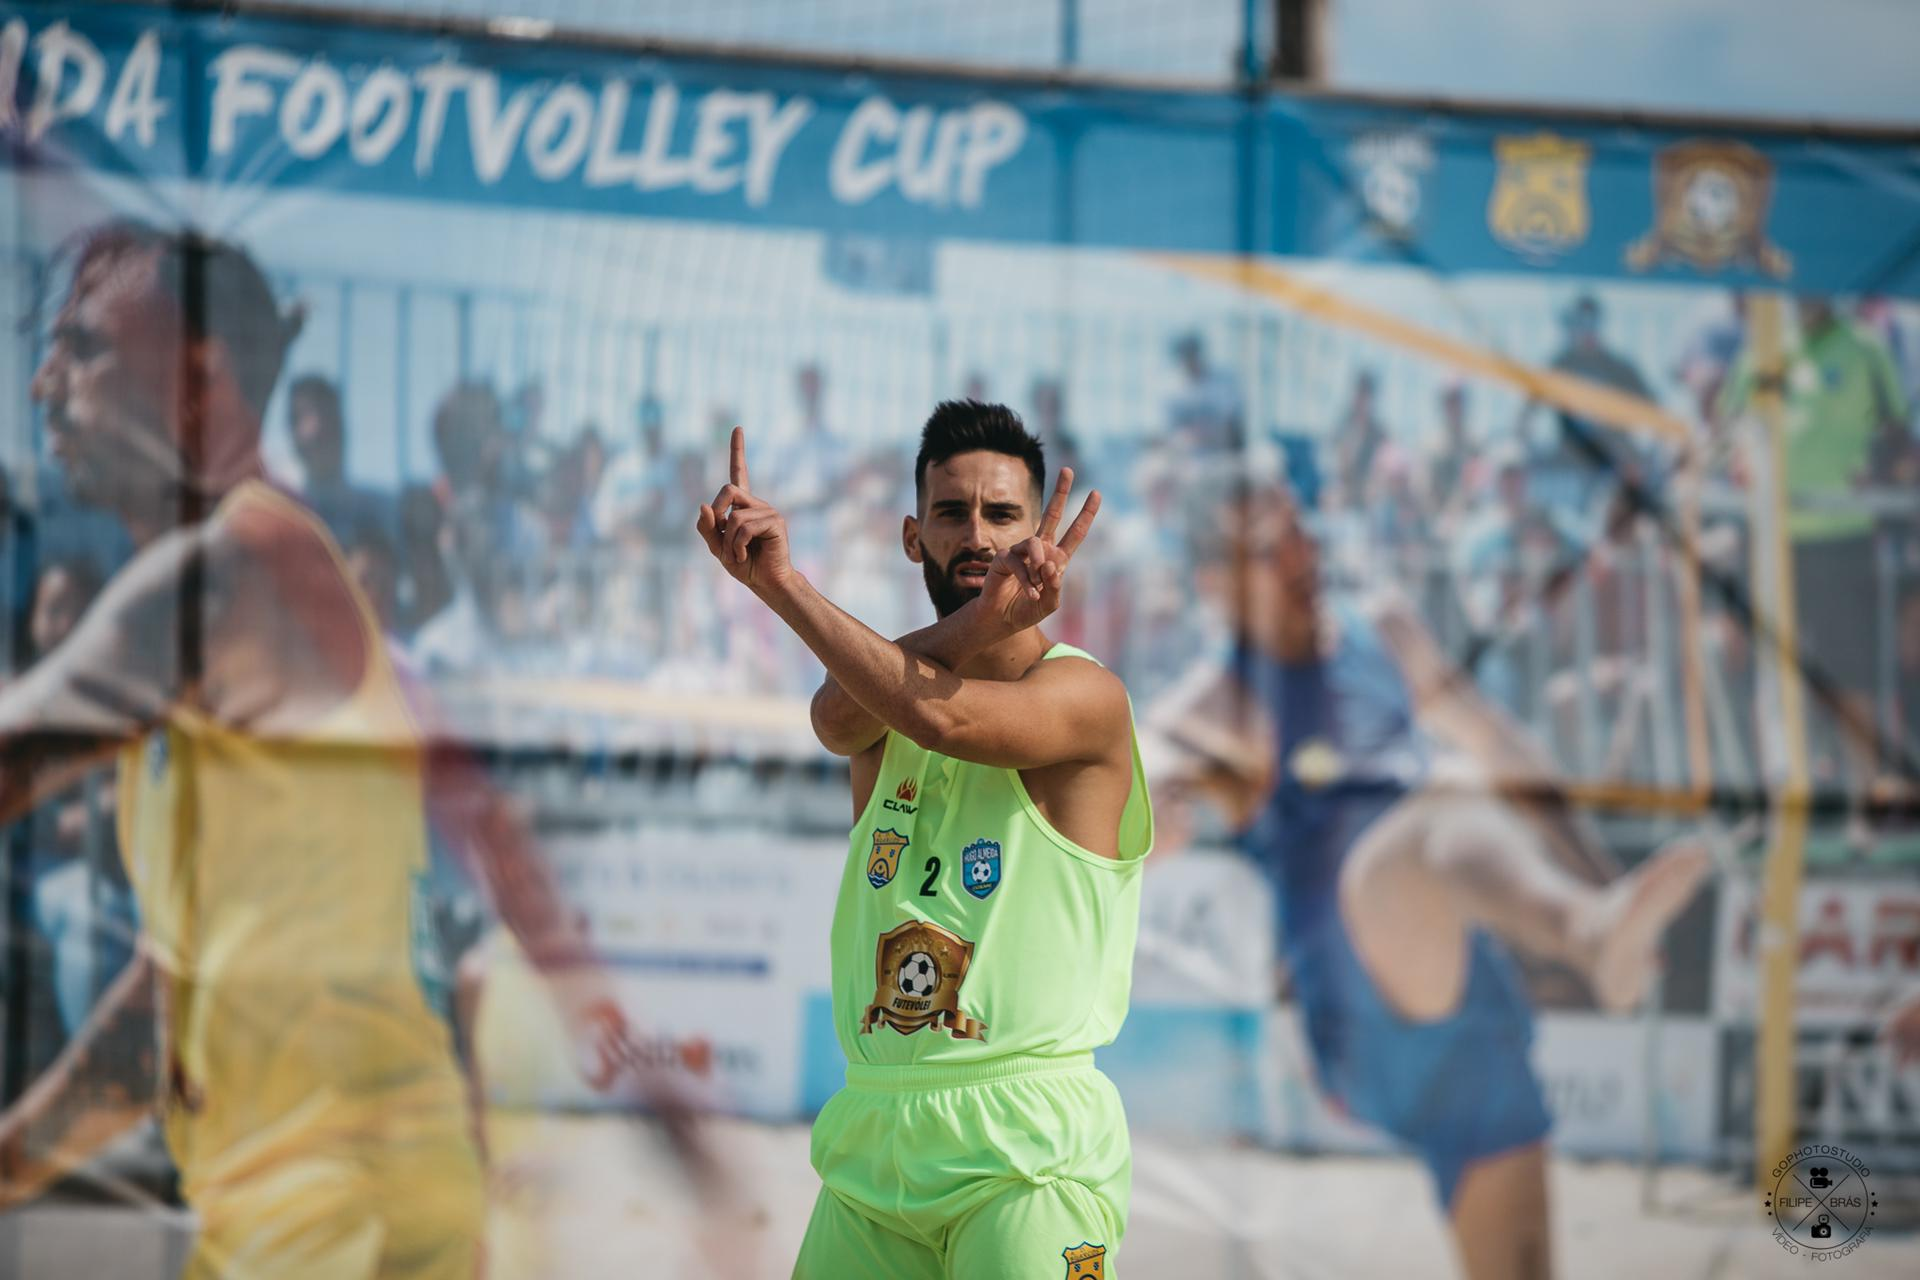 Beto Correia and Filipe Santos win Hugo Almeida Cup - Portugal 2019